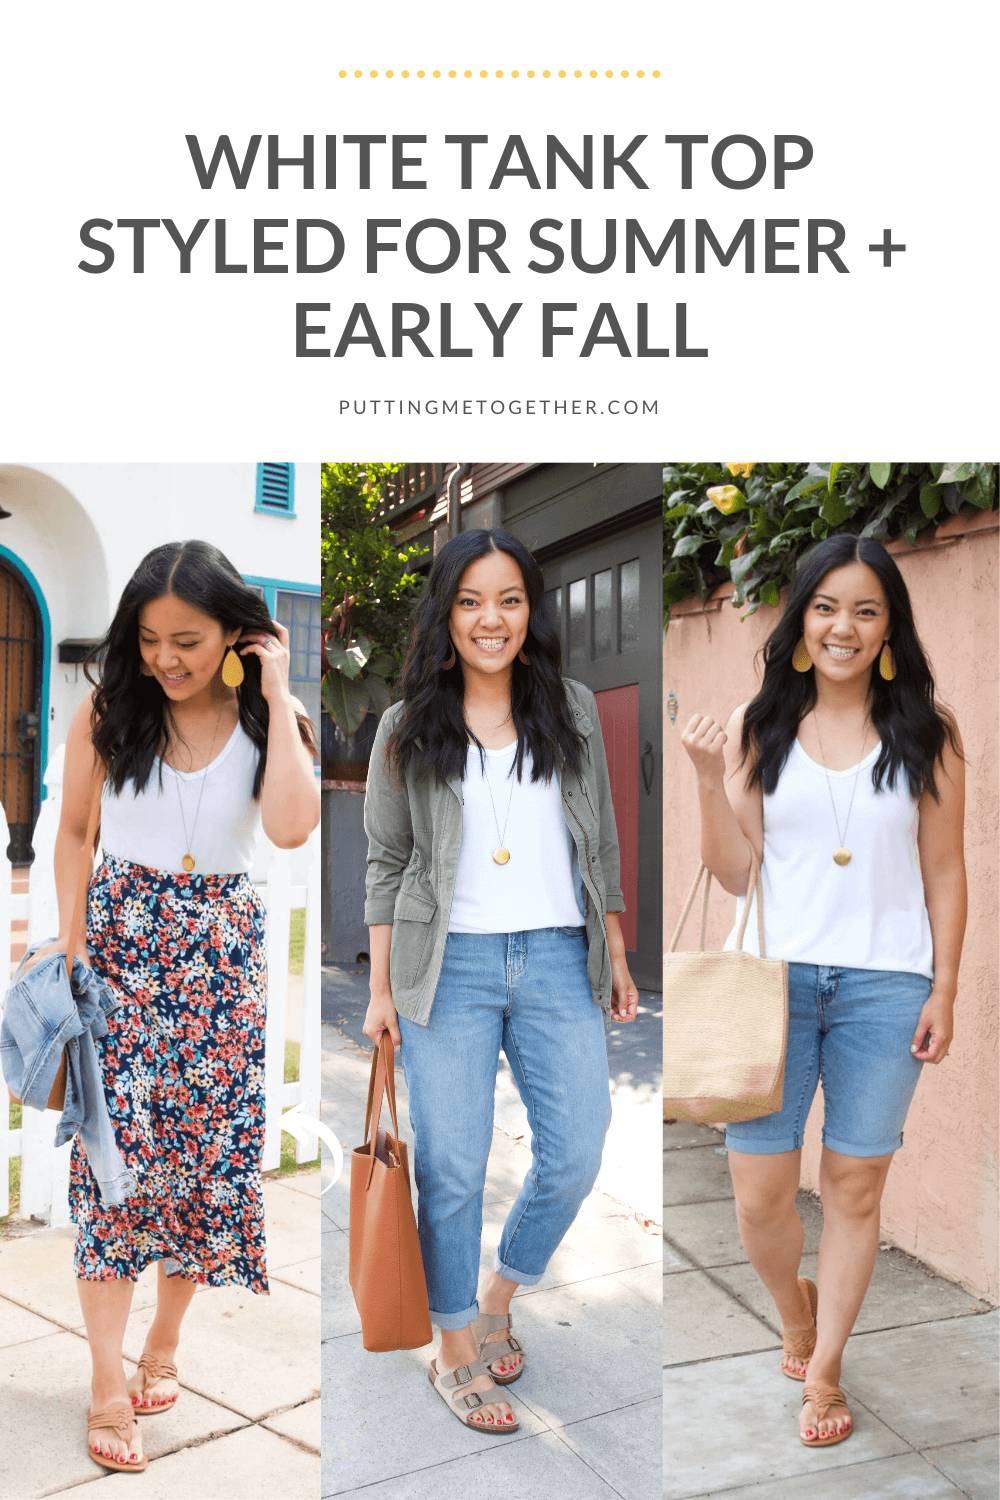 Three Outfits With a White Tank Top - From Summer to Early Fall